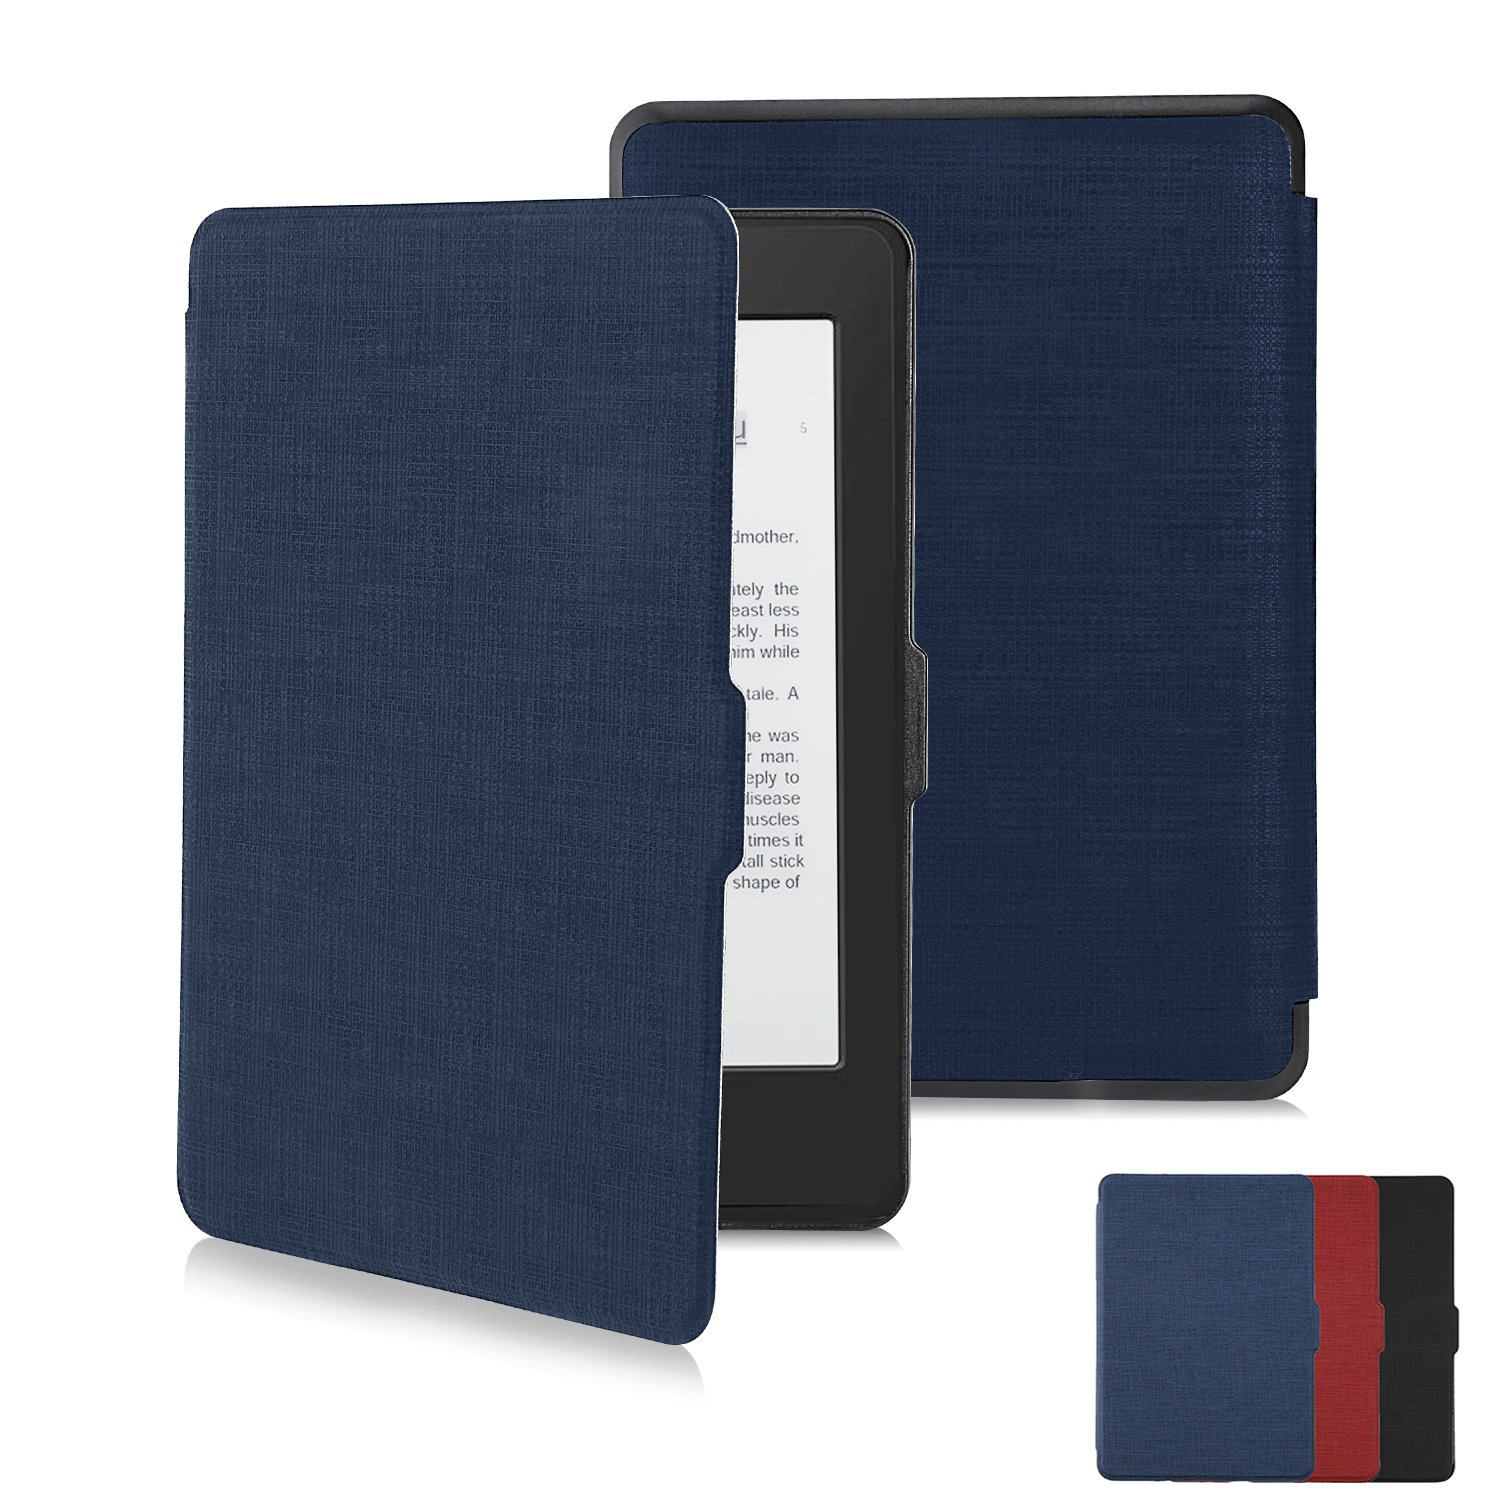 Kindle Paperwhite Case Kindle Cover Screen Protector Premium Thinnest and Lightest PU Leather Cover with Auto Wake/Sleep for Paperwhite 1/2/3